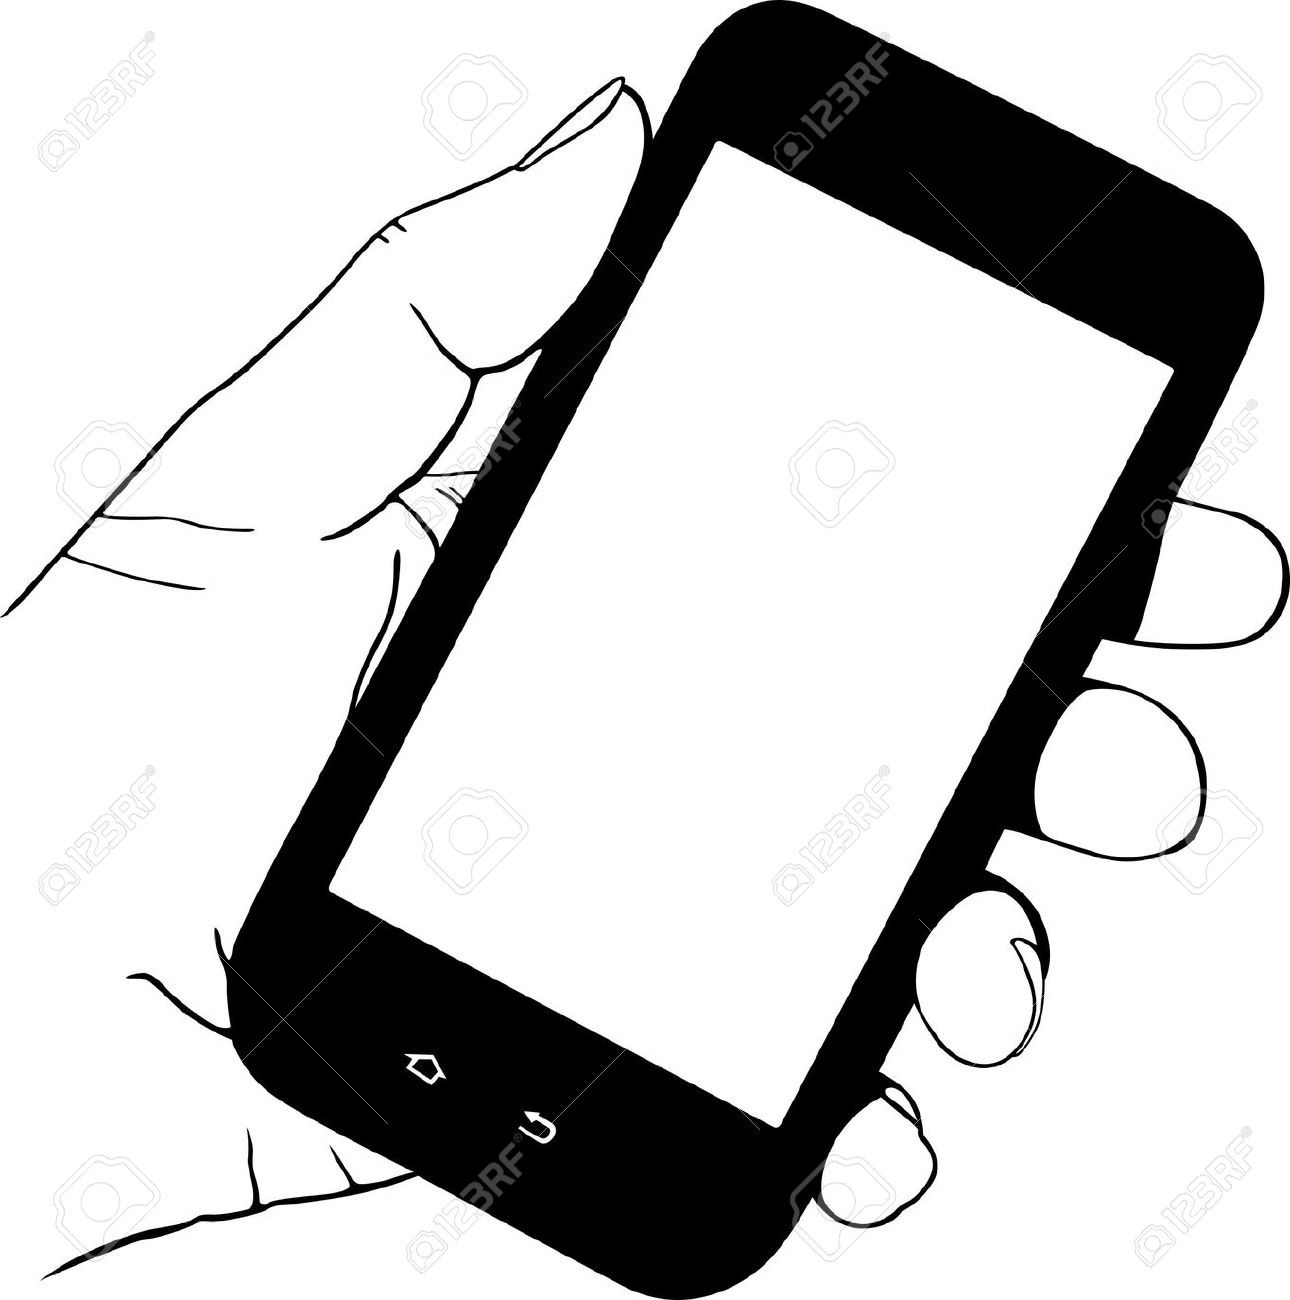 Smart Phone Clipart | Free download on ClipArtMag